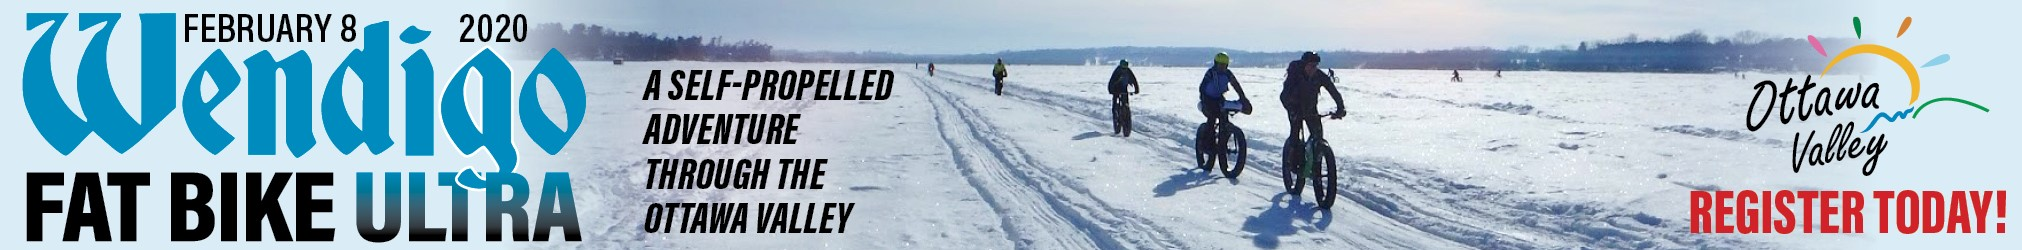 WendigoFatBikeUltra dec19jan20 1